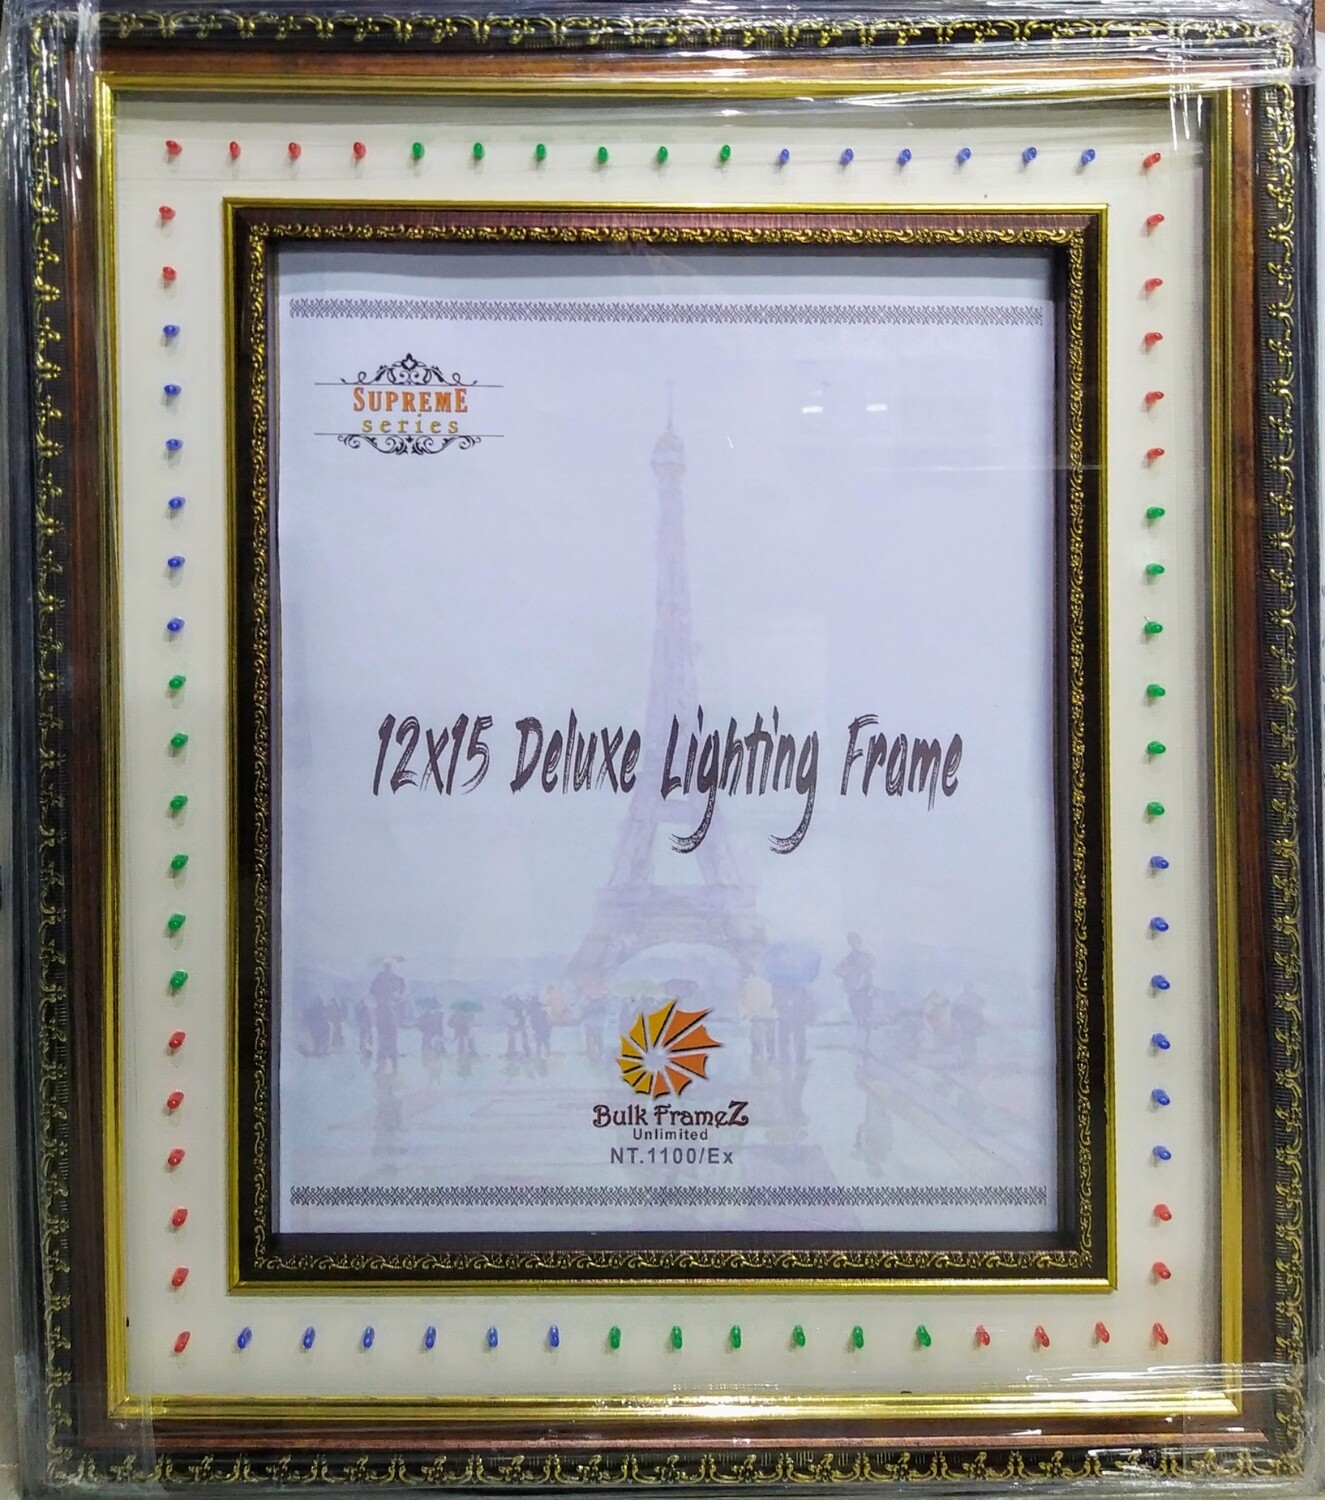 "Personalized - 12"" x 15"" Lighting Photo Frames (Select Frame Size and Upload your Photo here)"